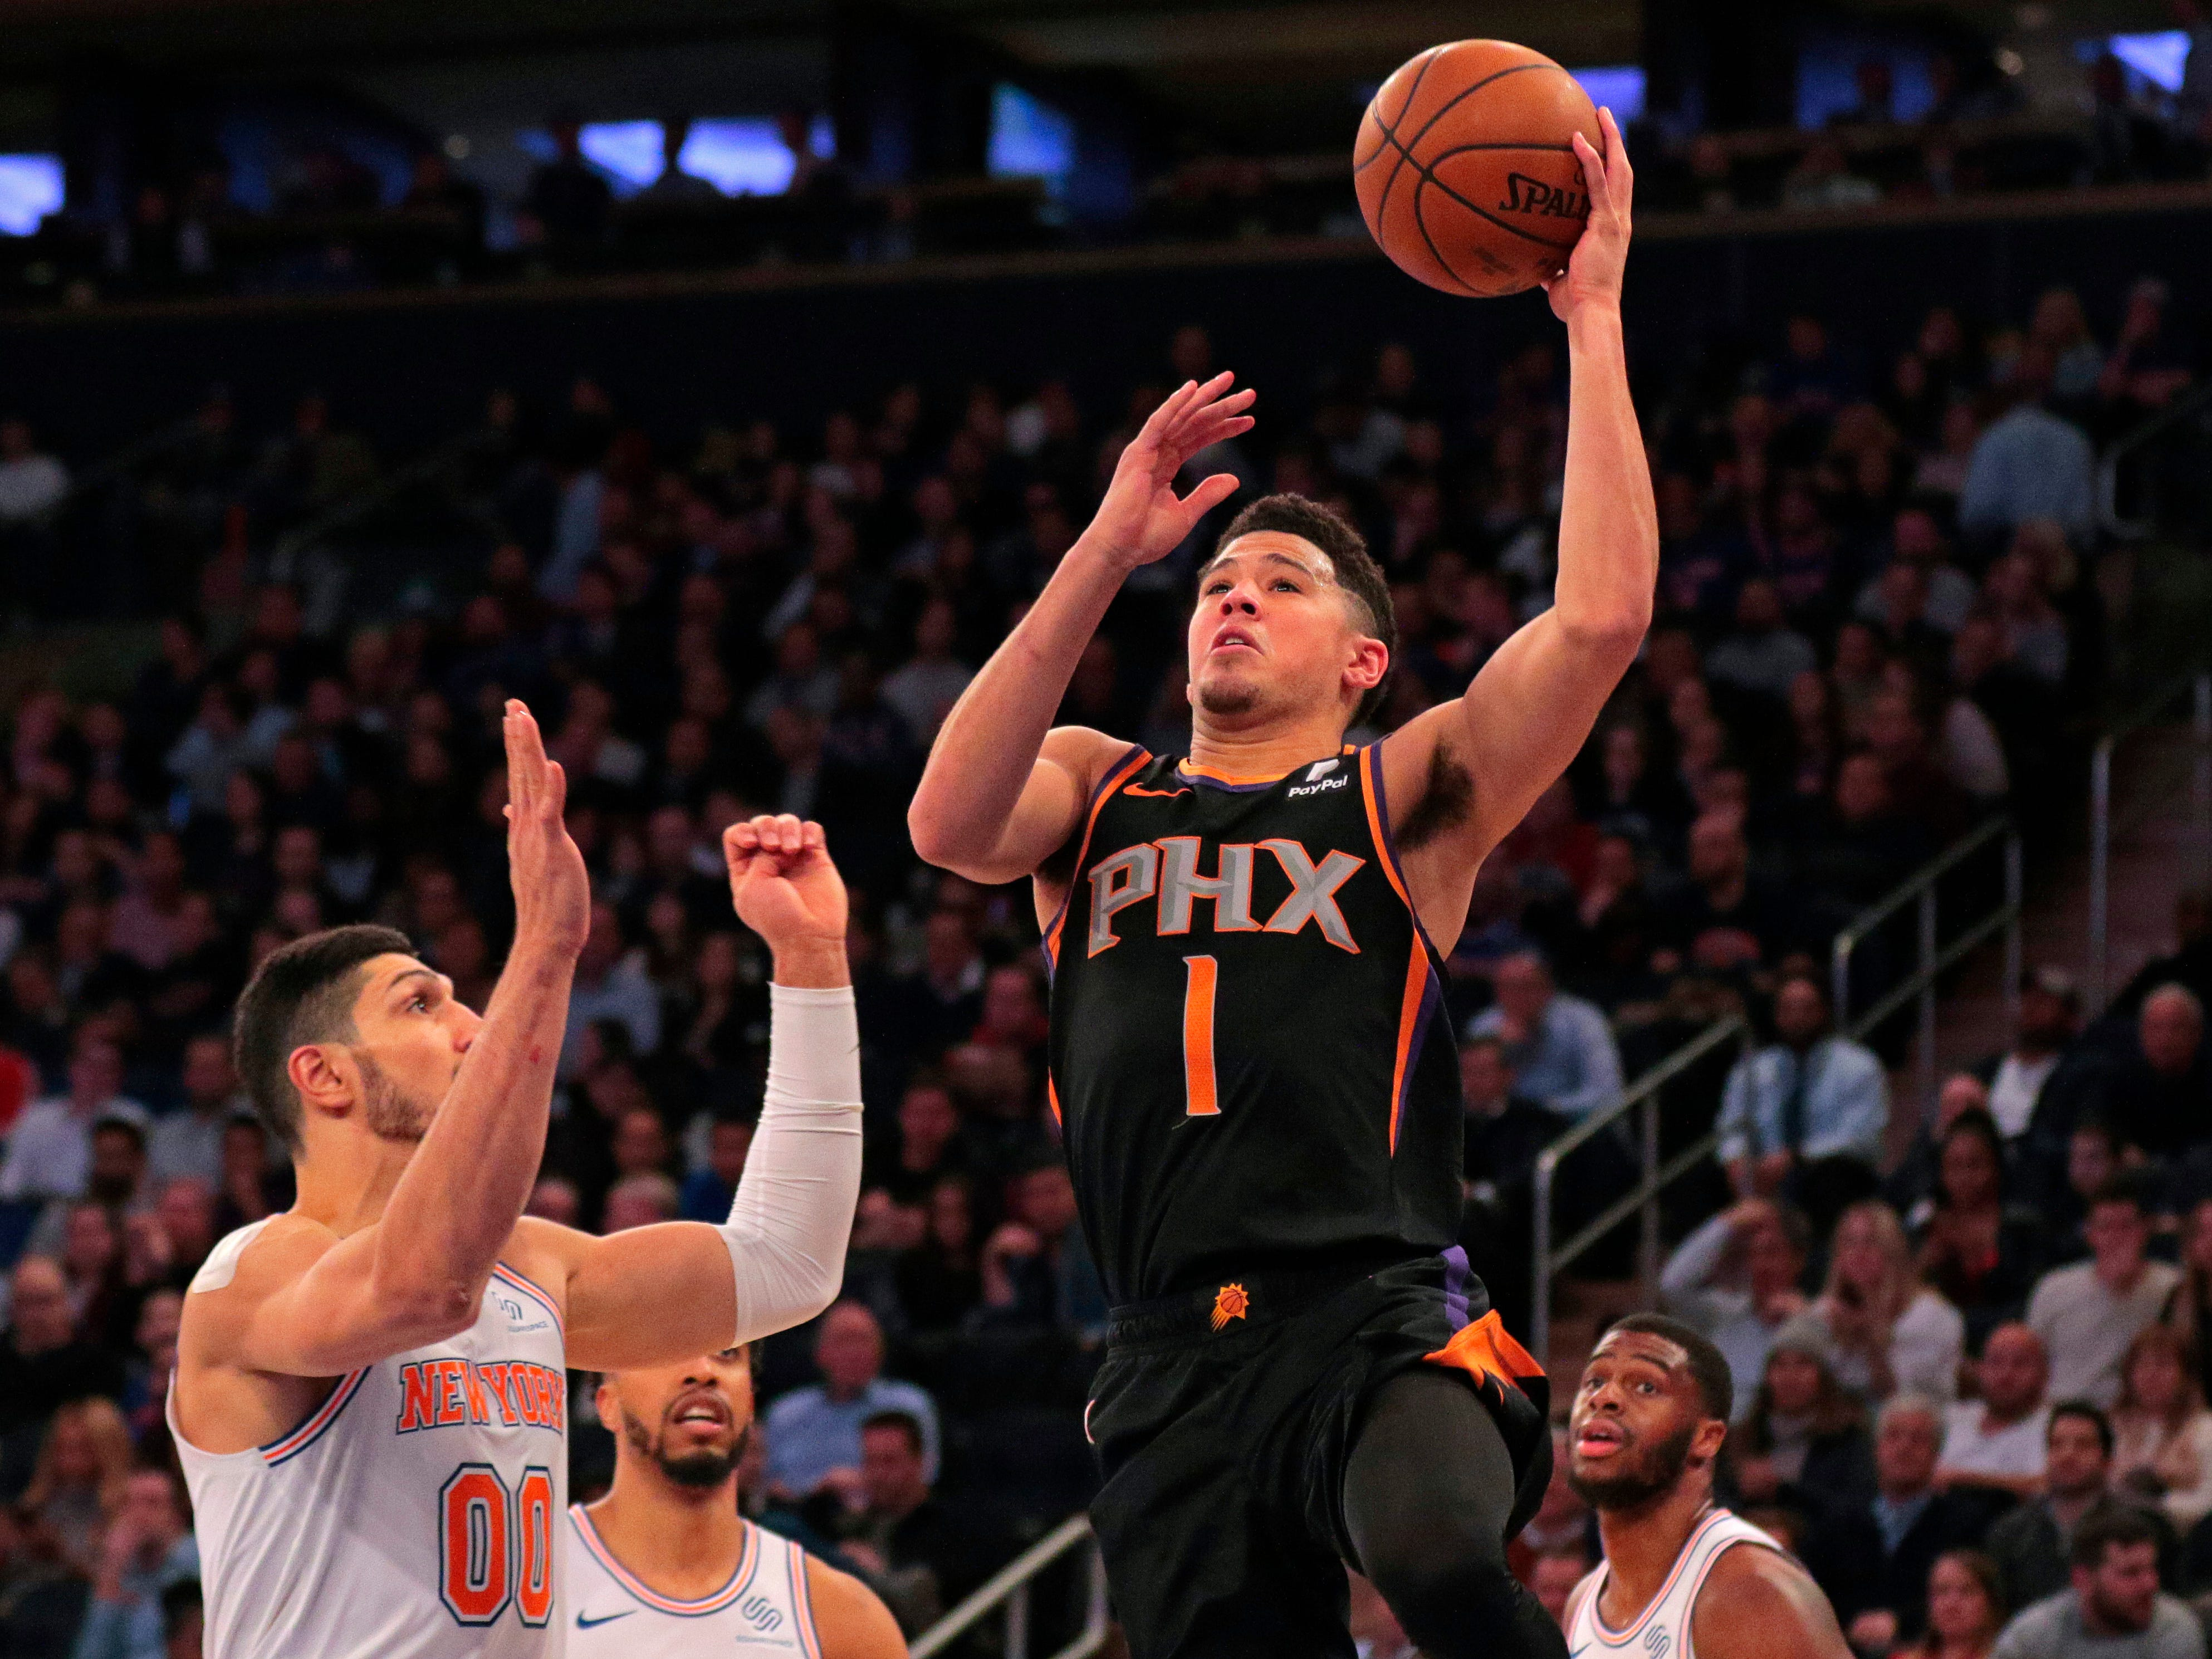 Dec 17, 2018: Phoenix Suns guard Devin Booker (1) drives to the basket past New York Knicks center Enes Kanter (00) during the first half at Madison Square Garden.